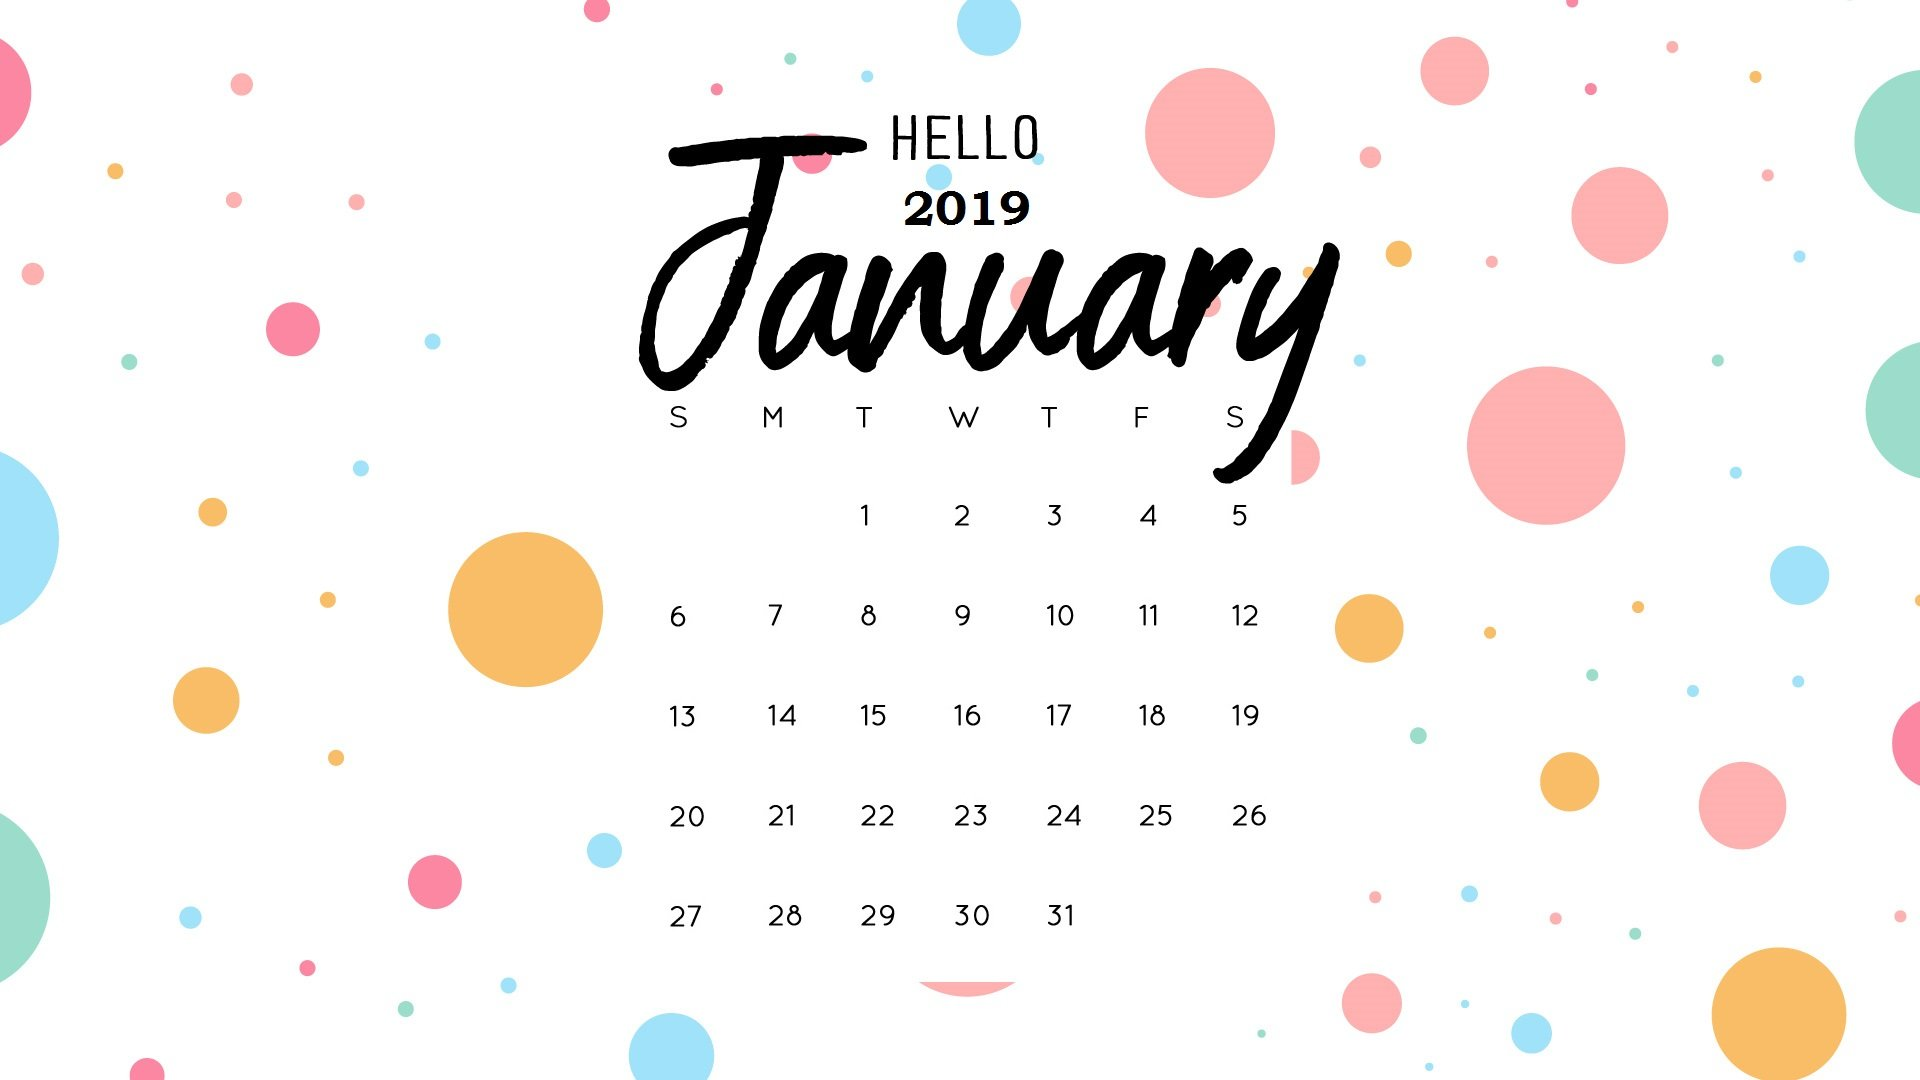 January 2019 Calendar Templates   All about January 1920x1080